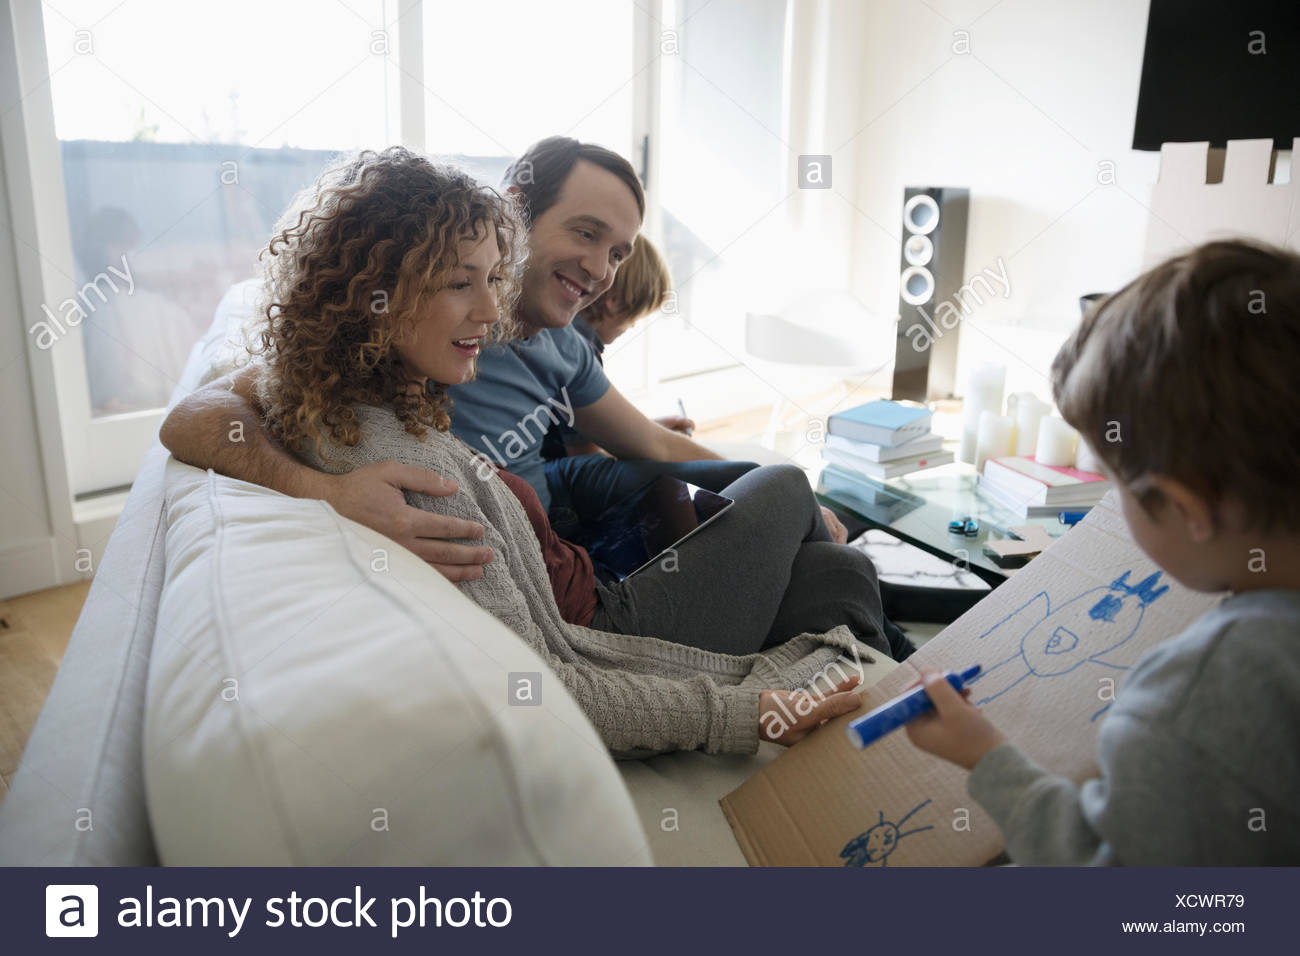 Family relaxing on sofa,son showing parents drawing on cardboard - Stock Image